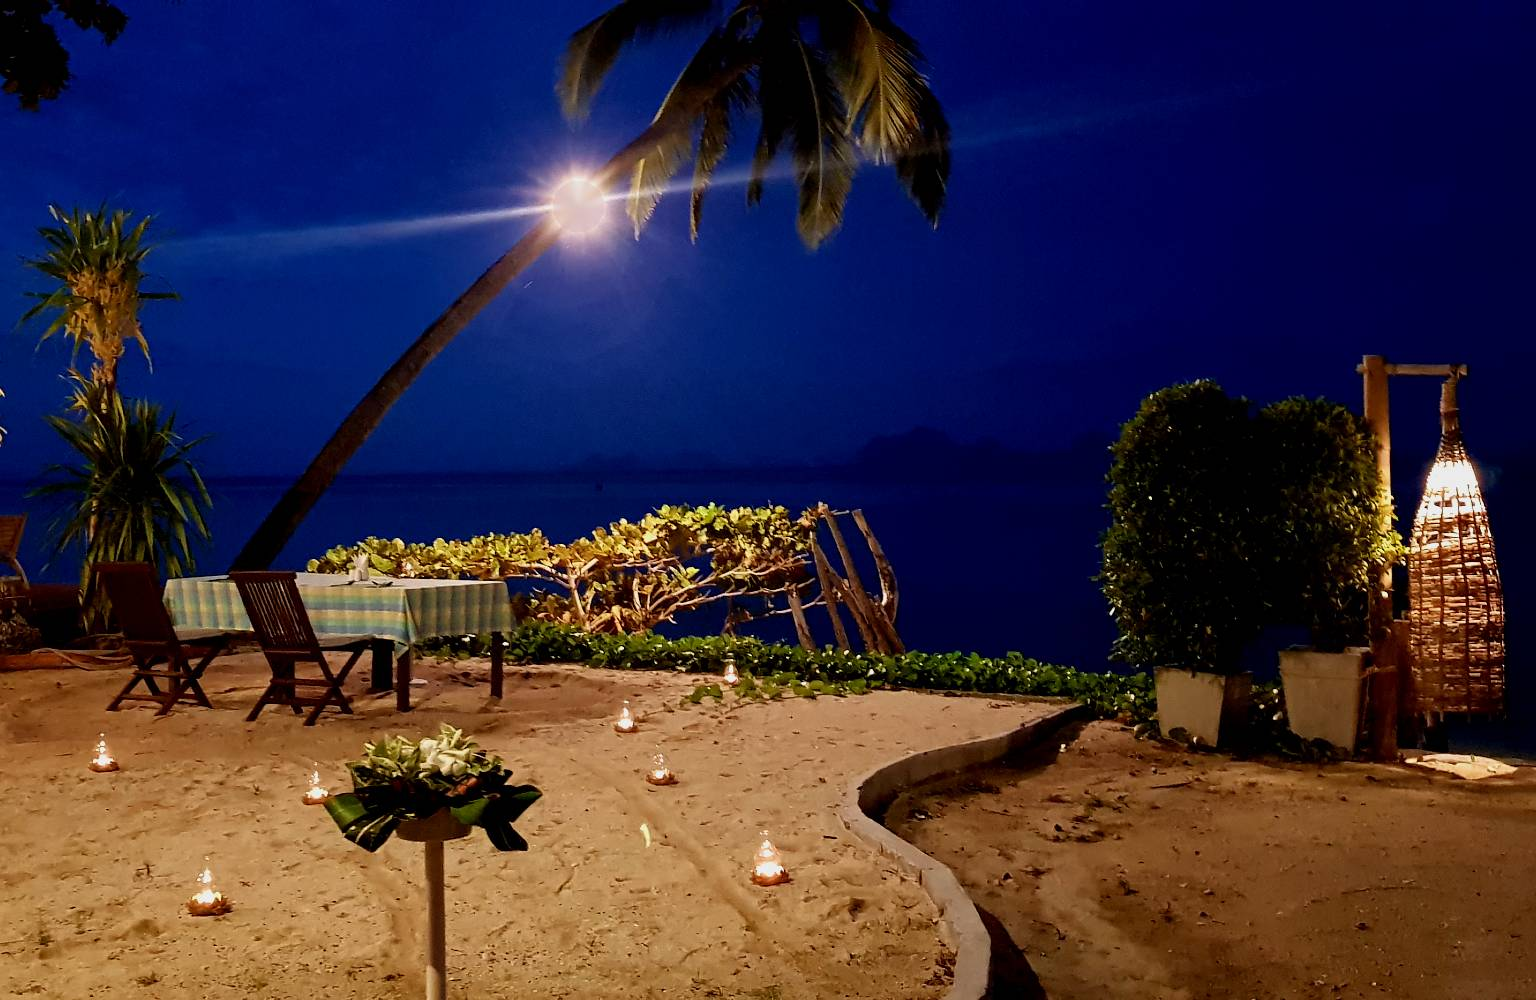 Romantic diner at the beach where Thapwarin Resort is located